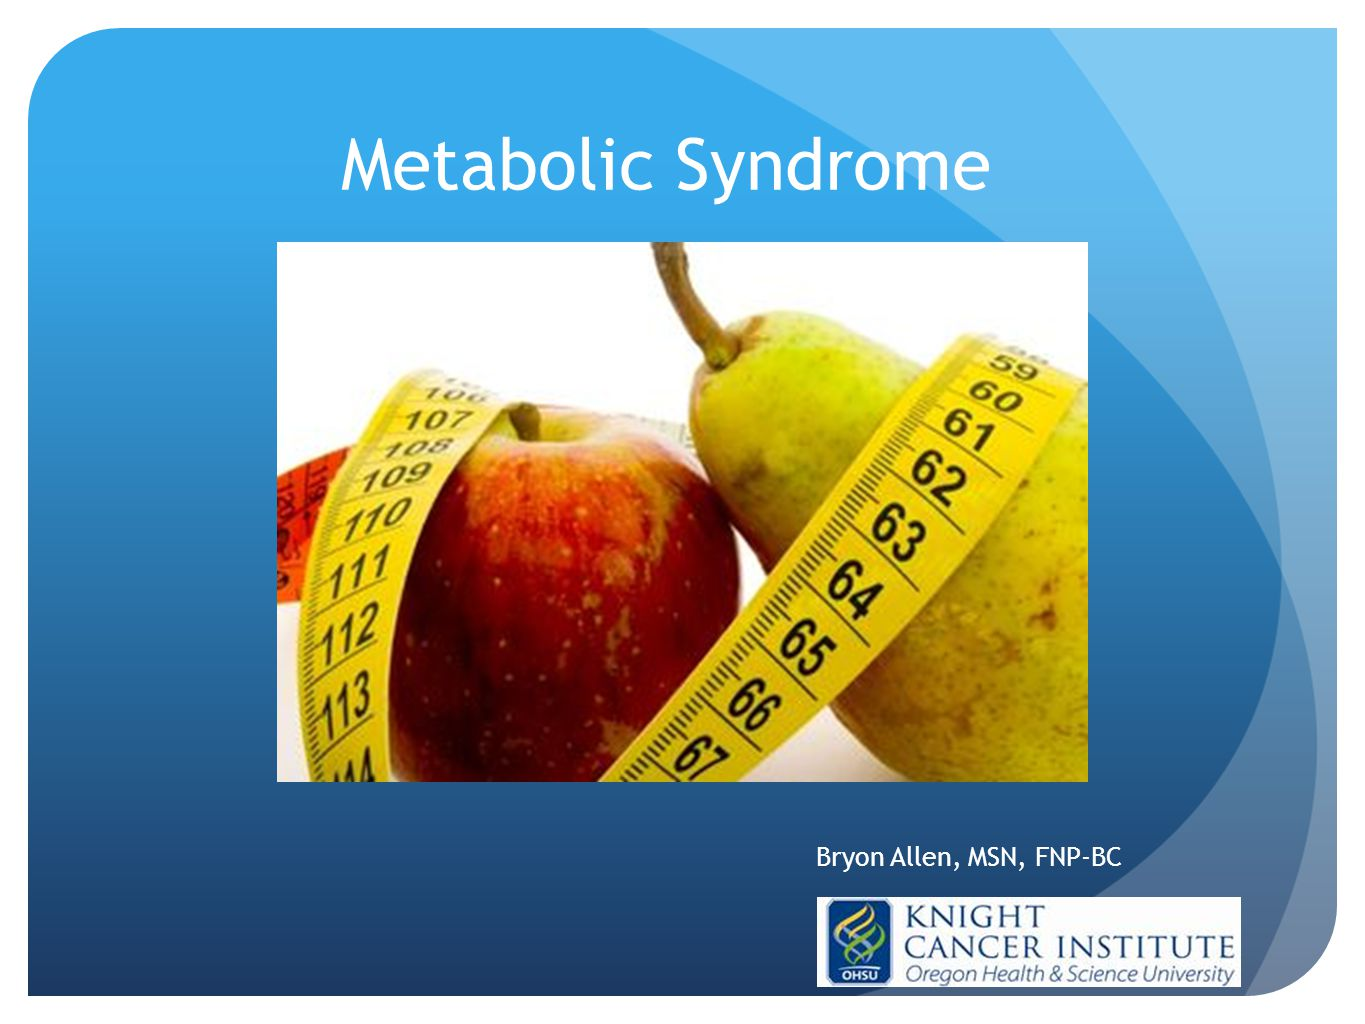 Metabolic Syndrome Bryon Allen, MSN, FNP-BC